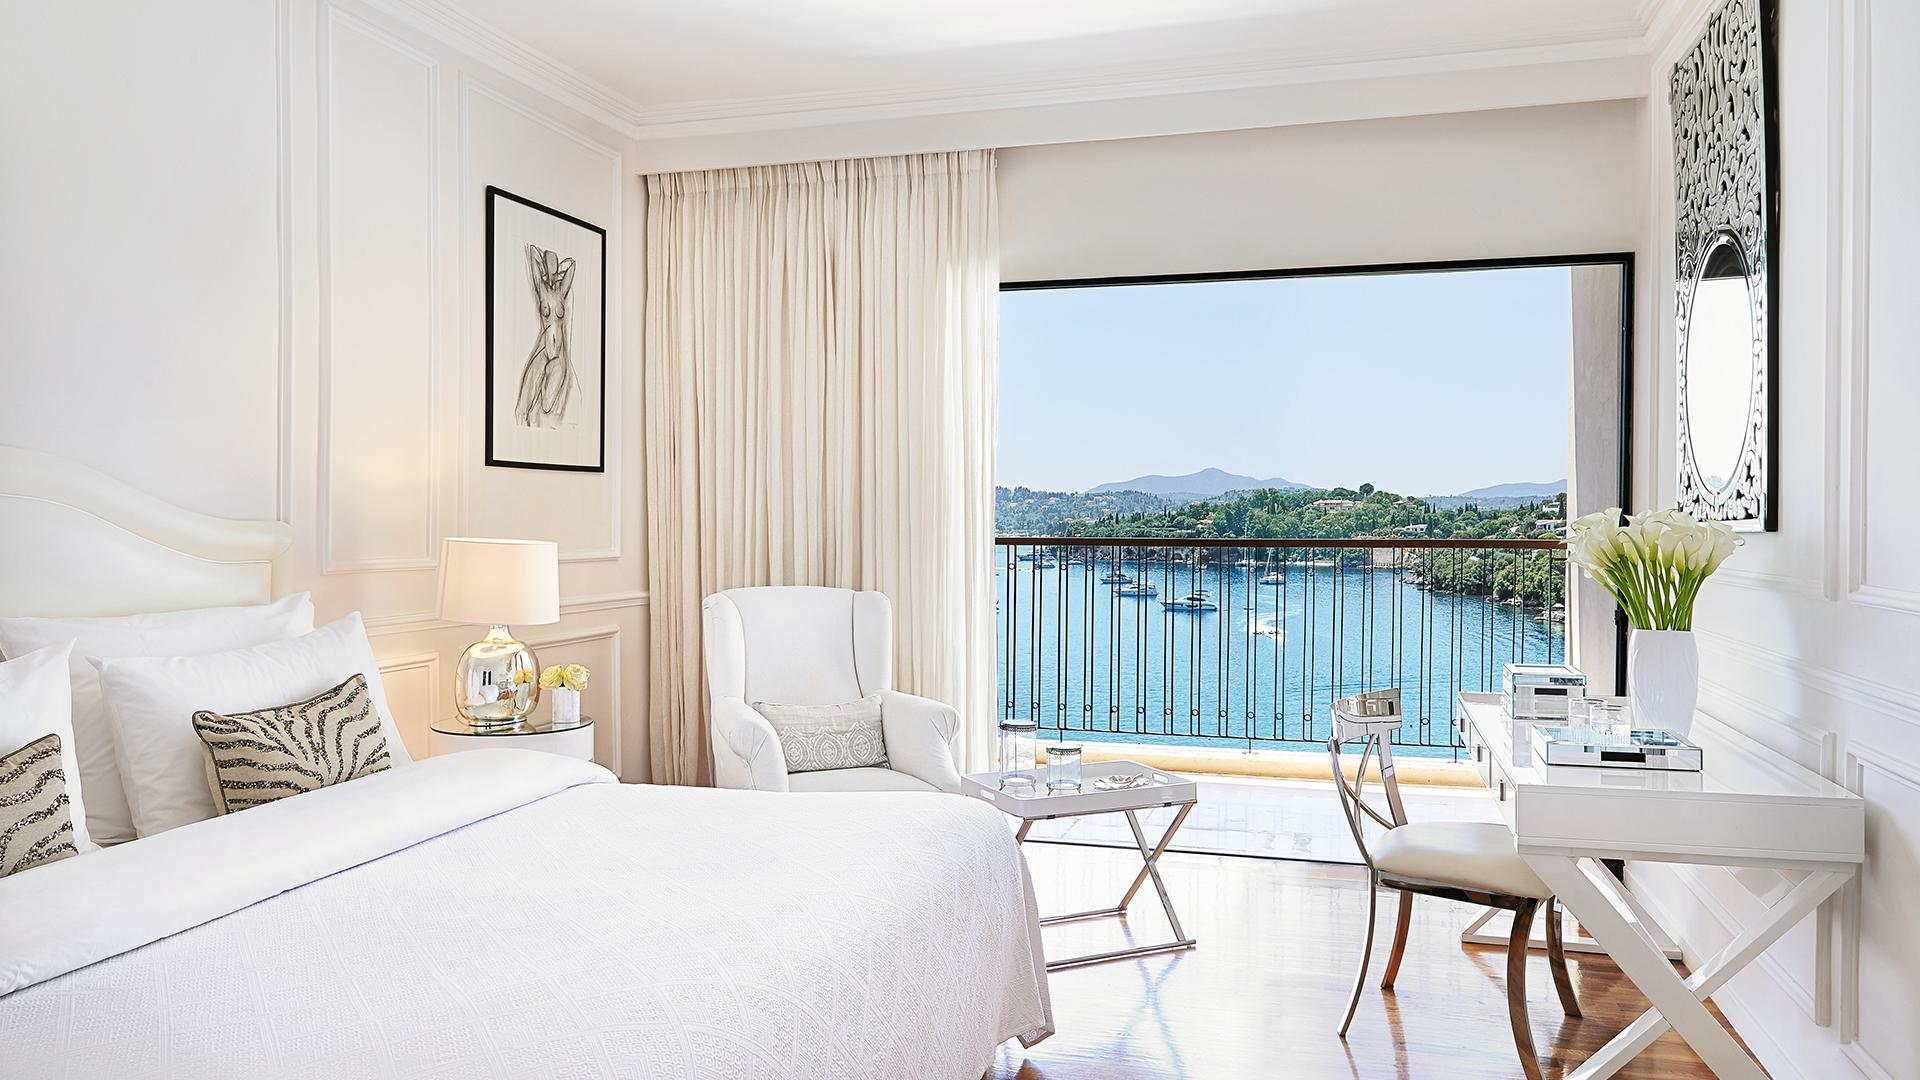 Deluxe Guestroom Seaview image 1 at Grecotel Corfu Imperial by null, null, Greece